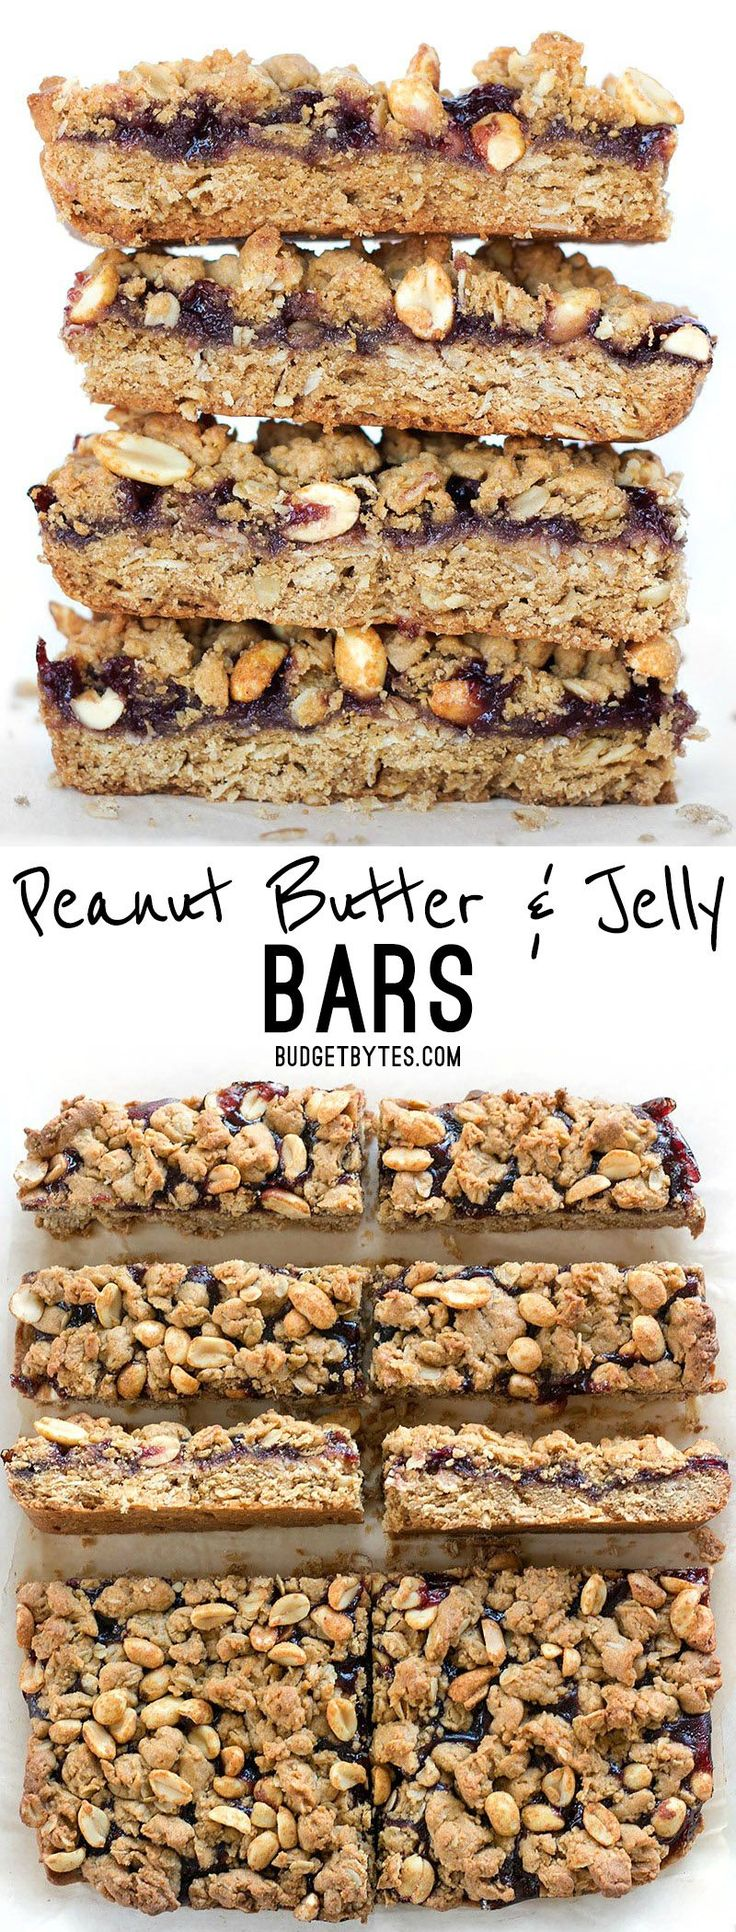 Peanut Butter and Jelly Bars are the perfect salty sweet dessert to remind you of your childhood. BudgetBytes.com